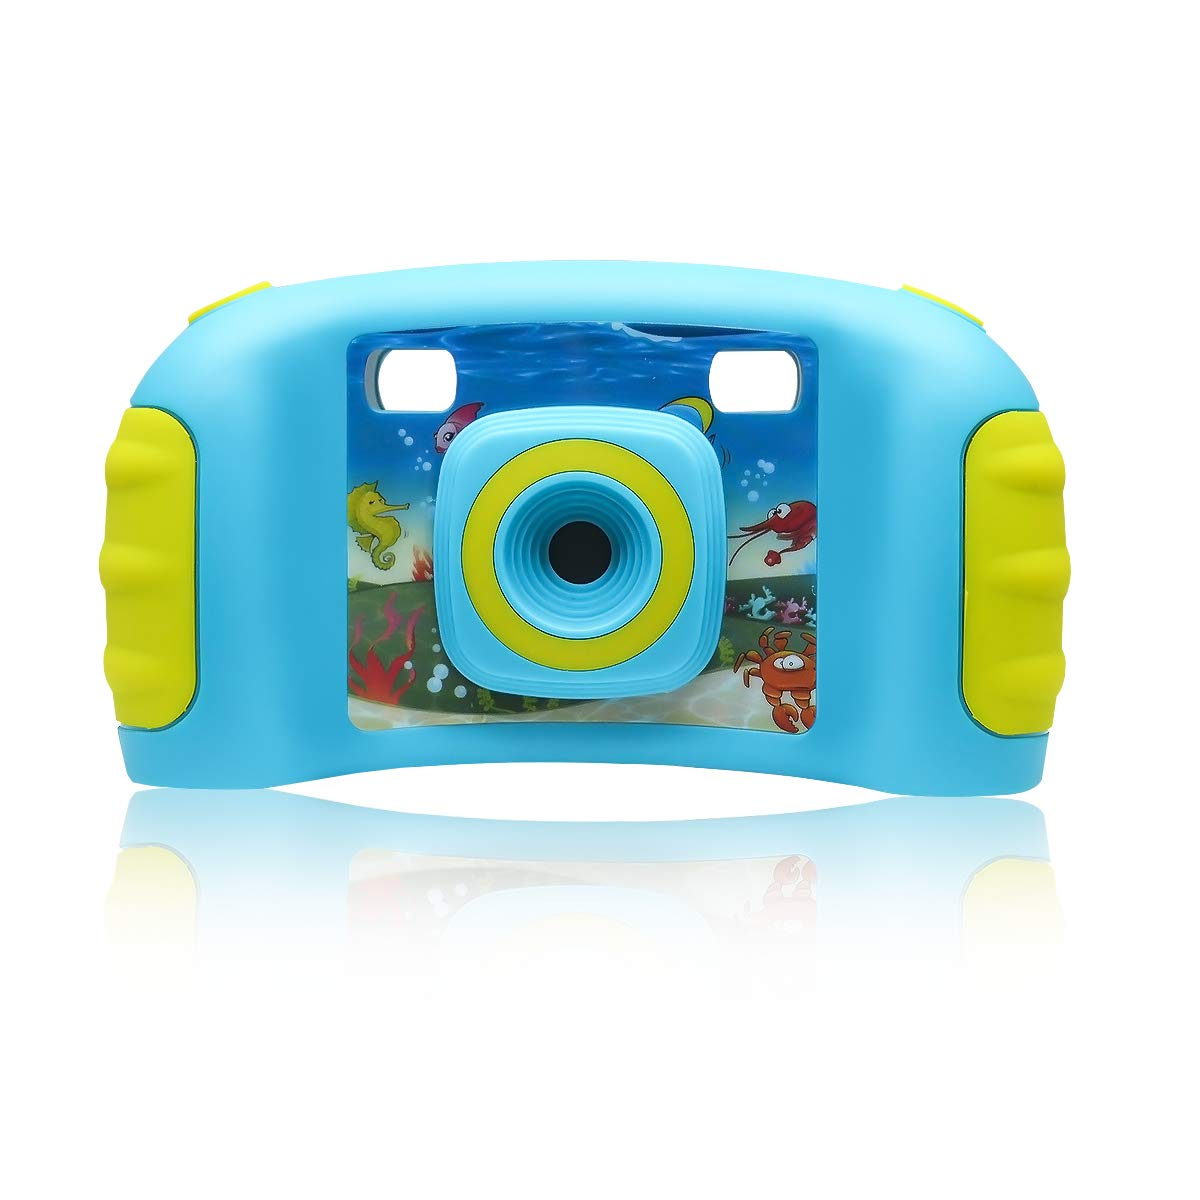 Eggschale Kids Digital Camera, Multi-Function Video Recorder Camcorder Camera with 1.77 Inch LCD Screen, 128 MB Built-in Memory Mini Cameras with 4-in-1 Games, Birthday for Children Boys - Blue